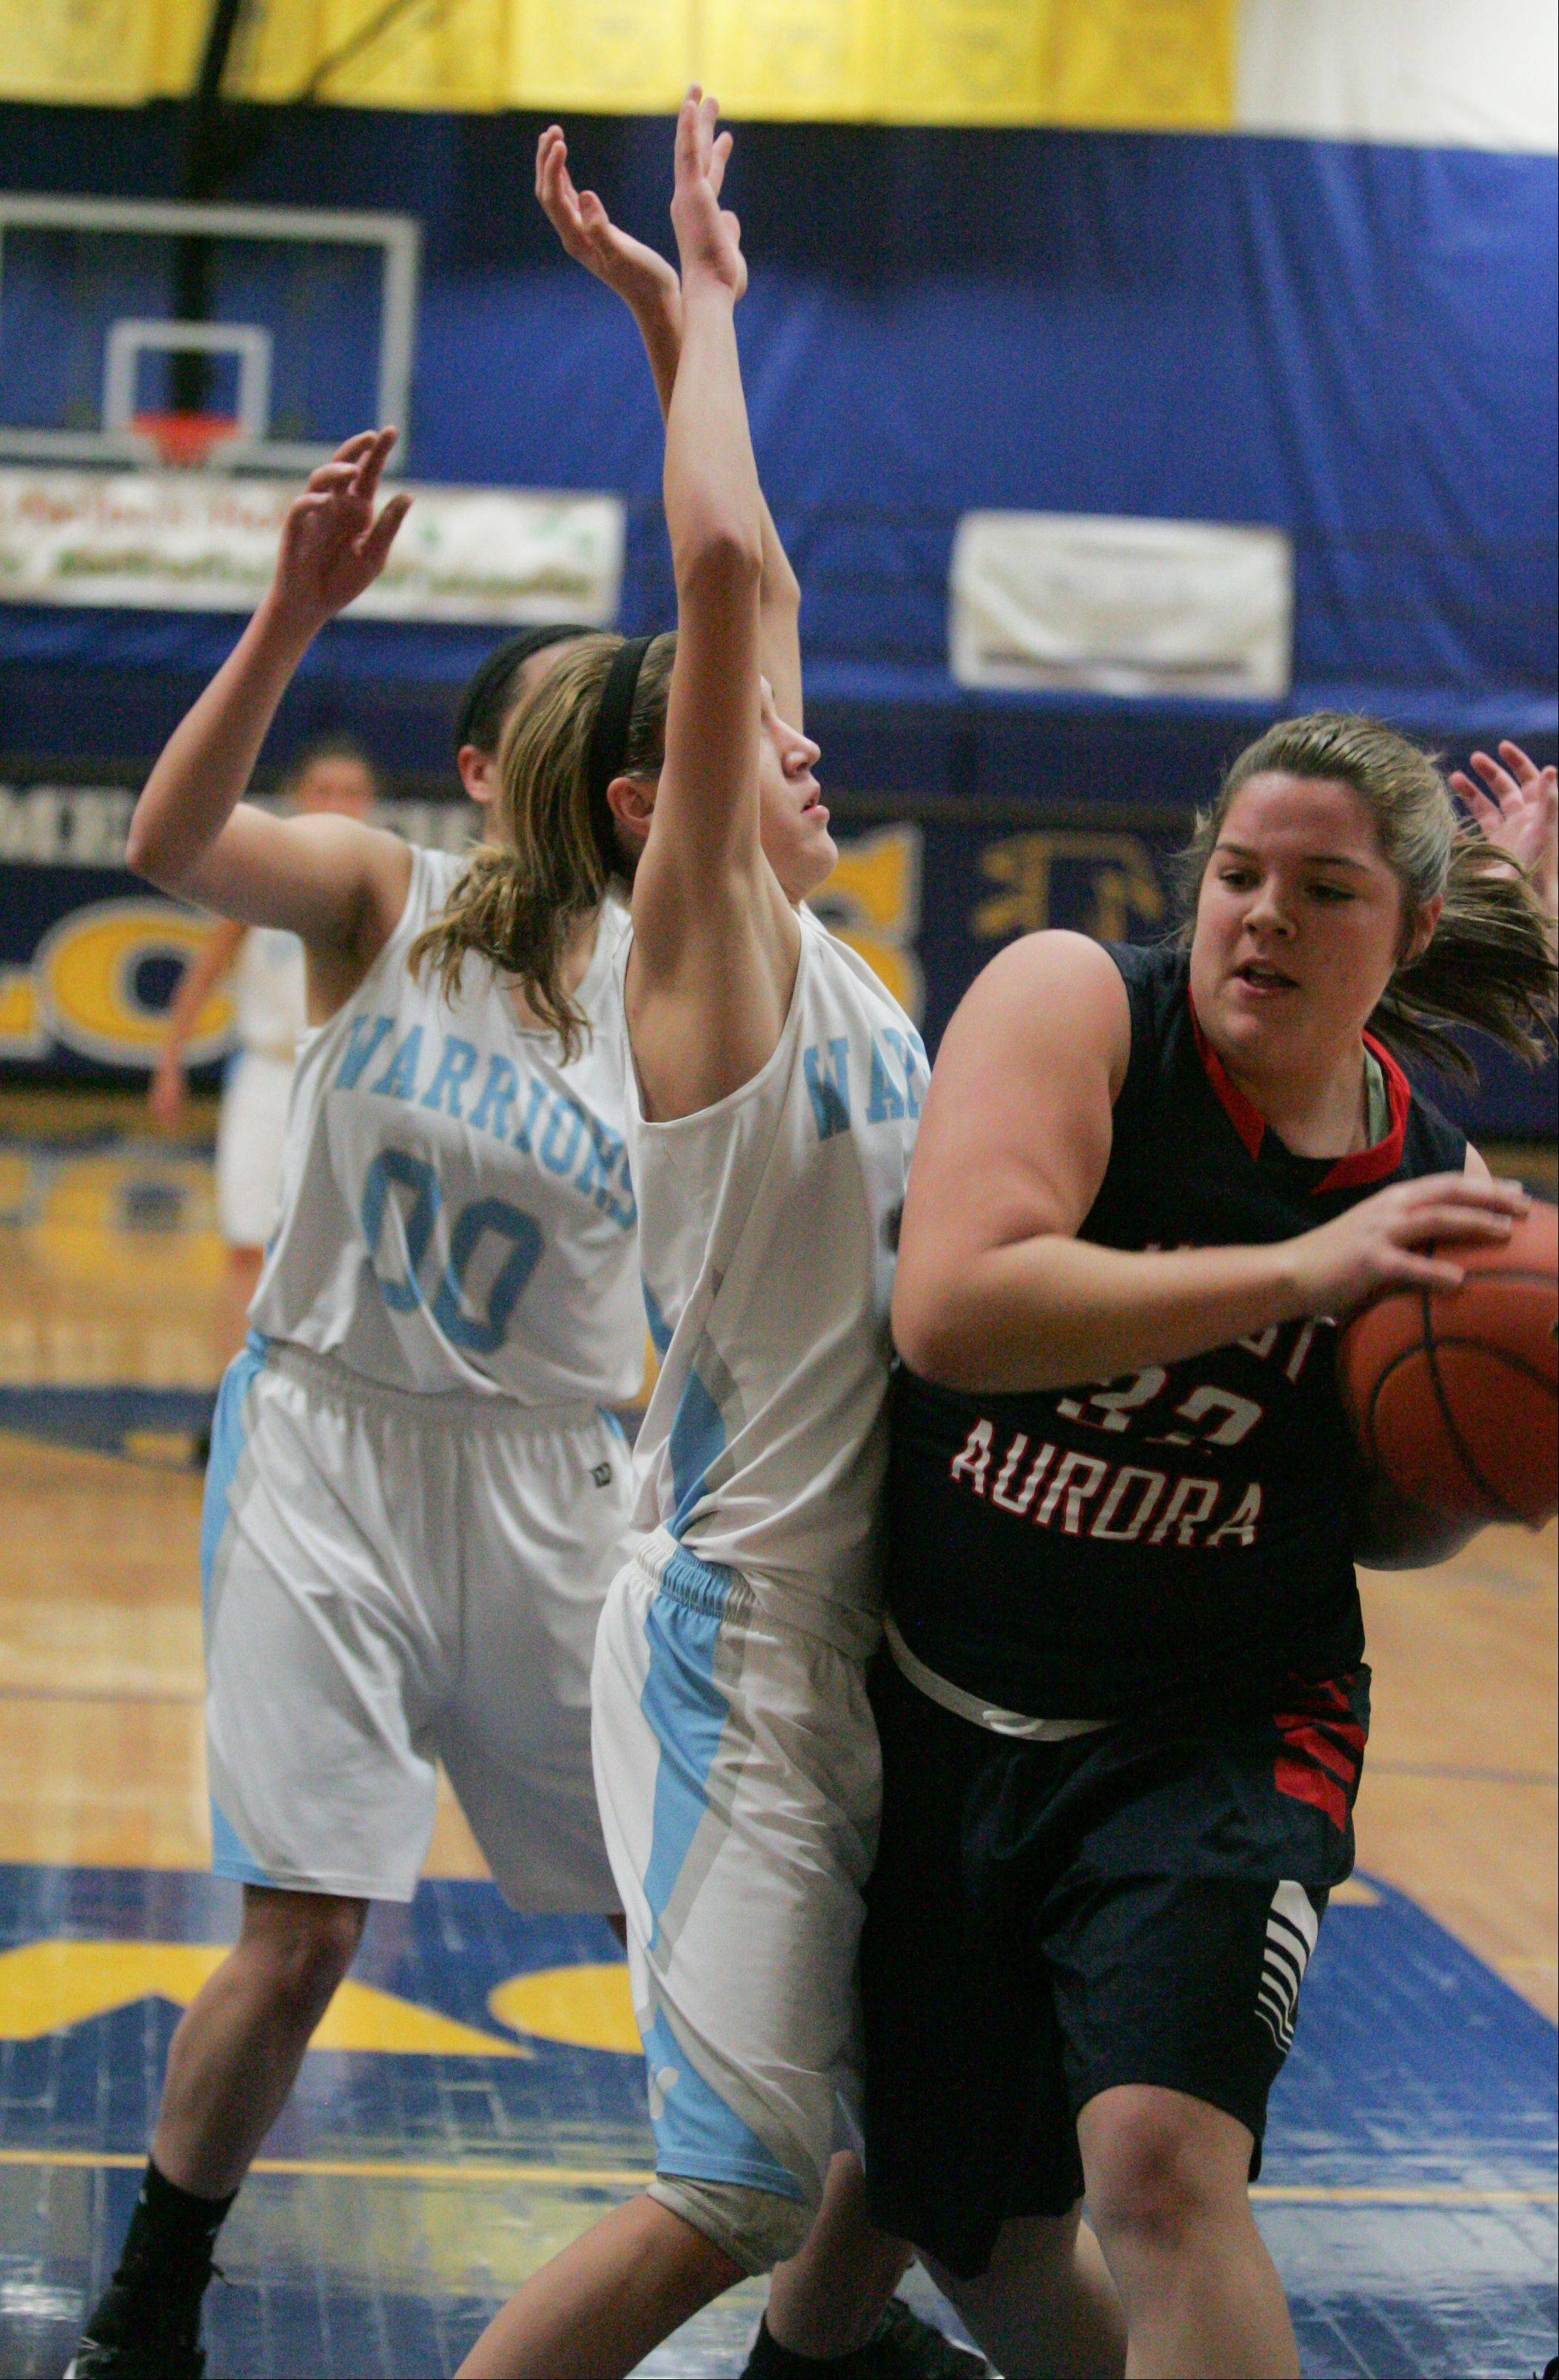 Images from the West Aurora vs. Willowbrook girls basketball game during the Bill Neibch Holiday Tournament at Wheaton North High School on Wednesday, December 26, 2012.